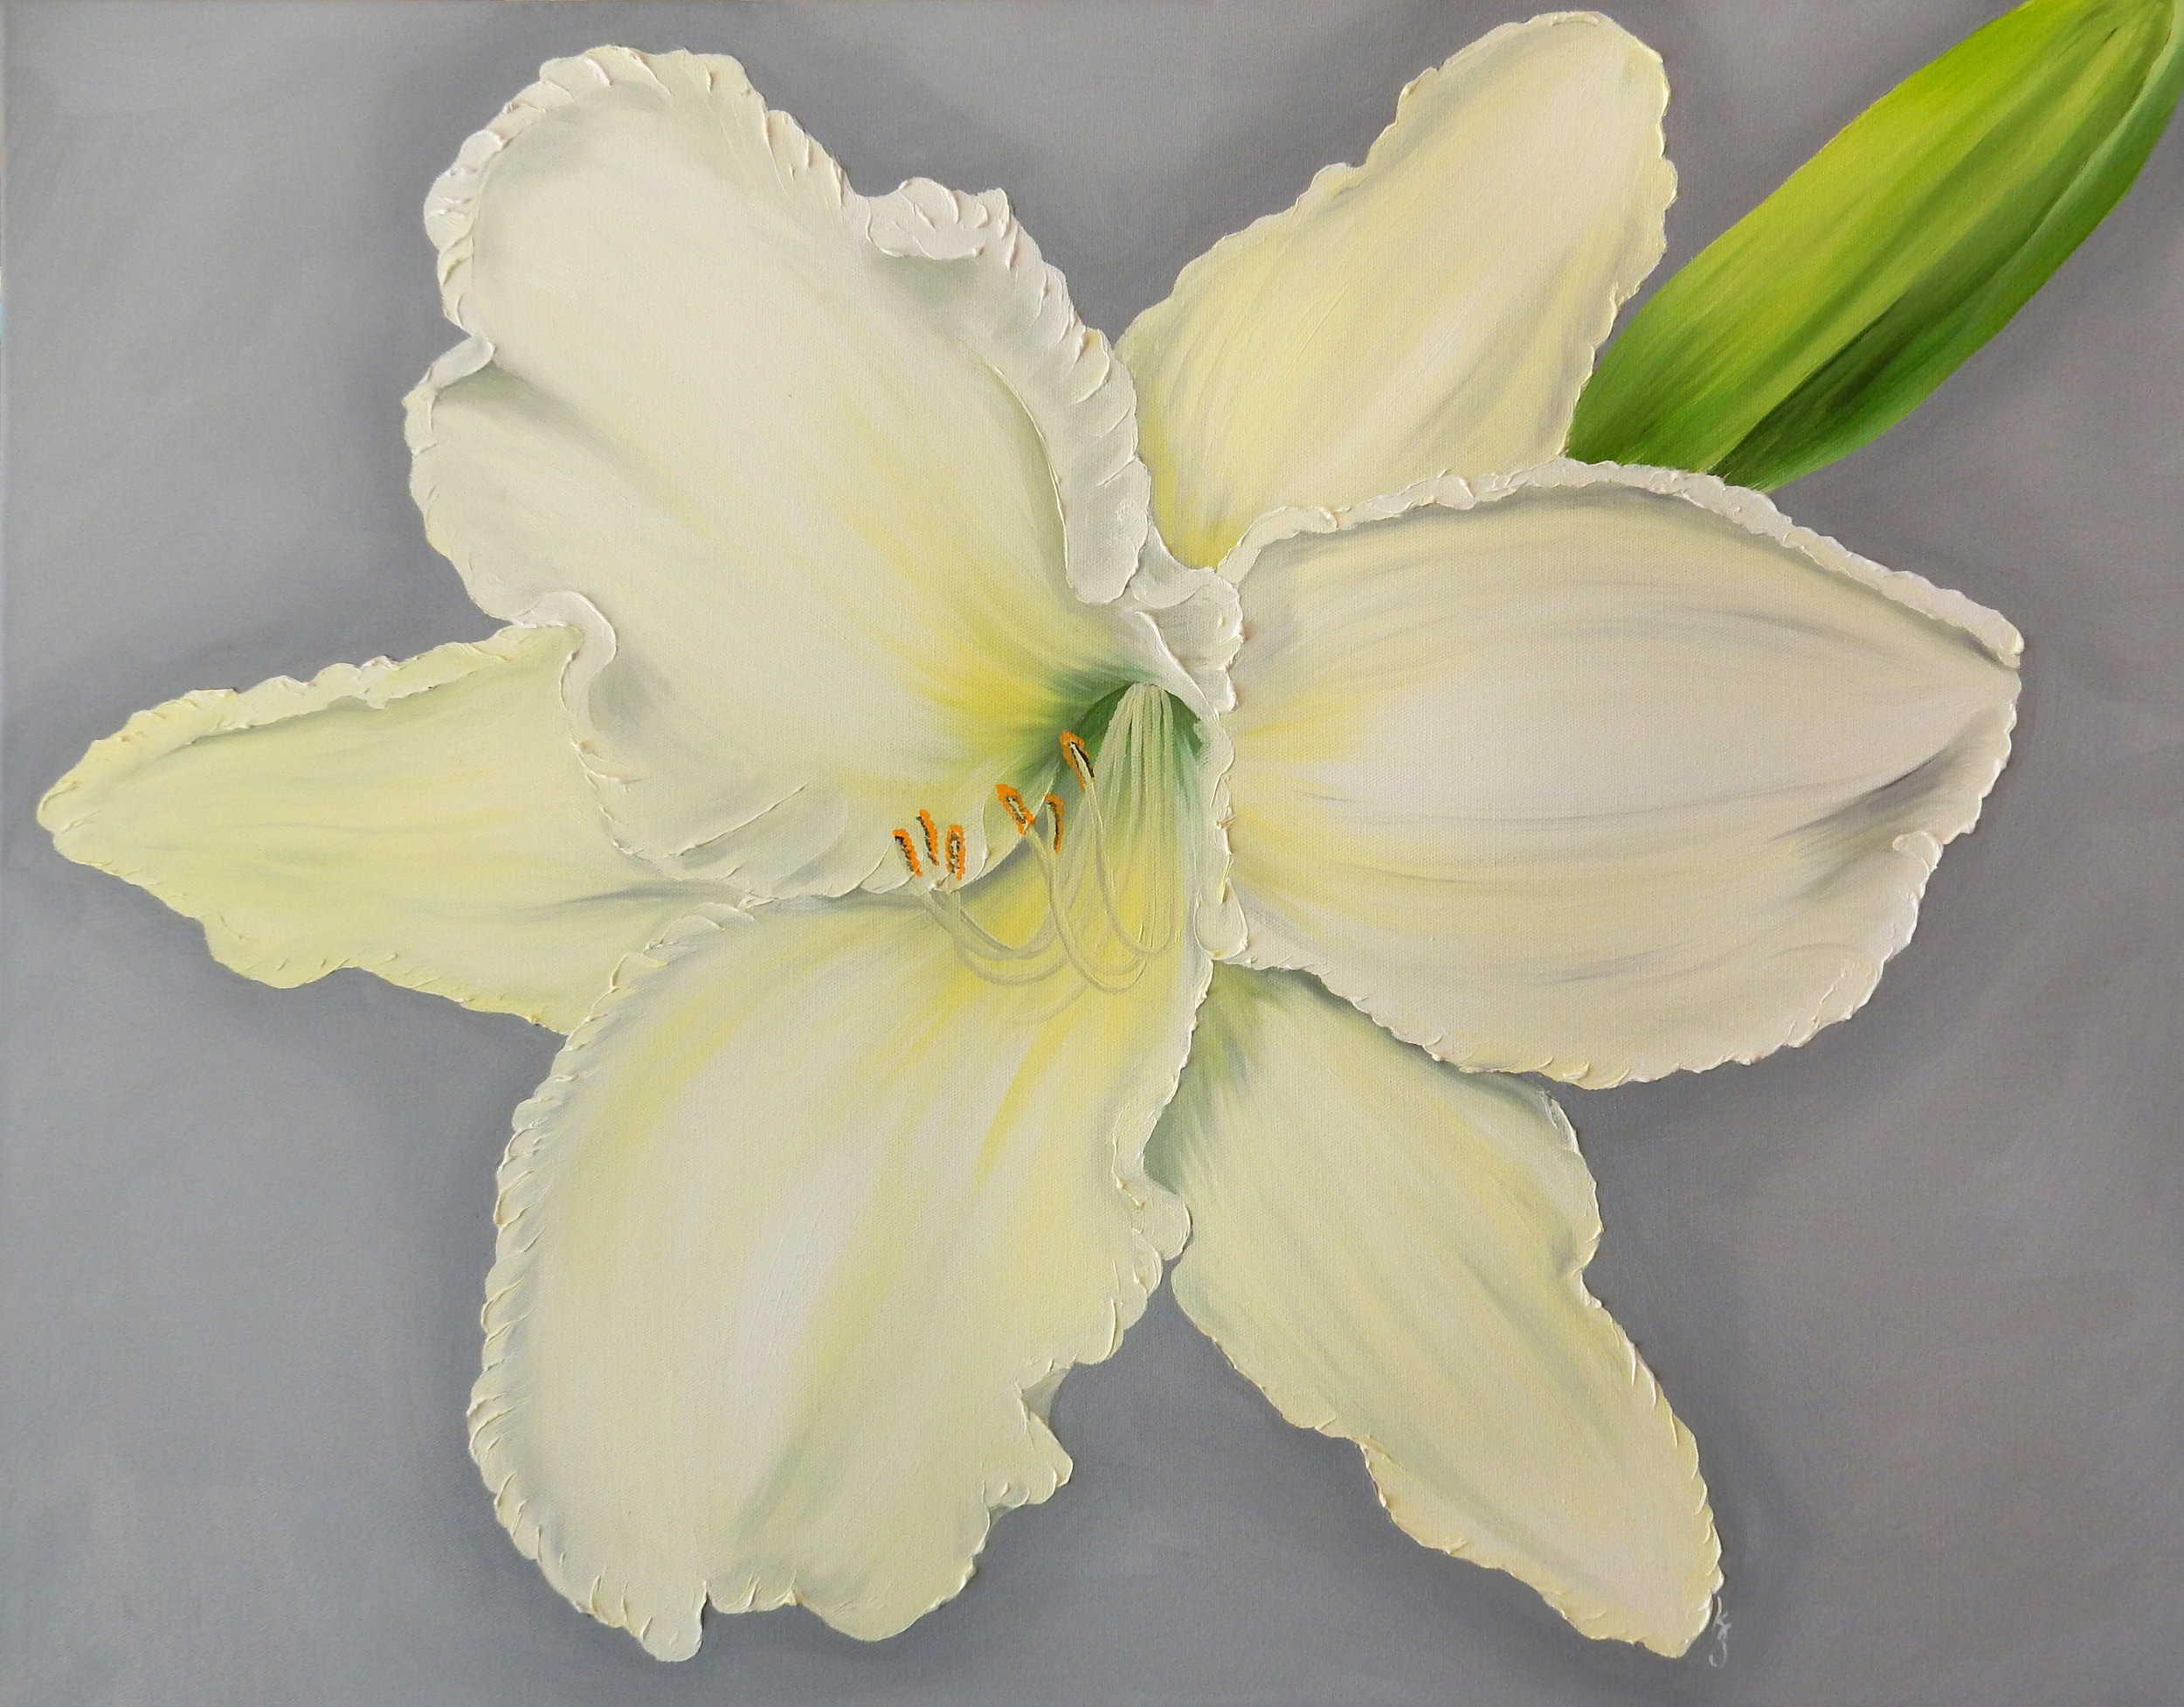 Daylily Light Yellow  2017 Oil on canvas 24 x 30 x 1.5 inches